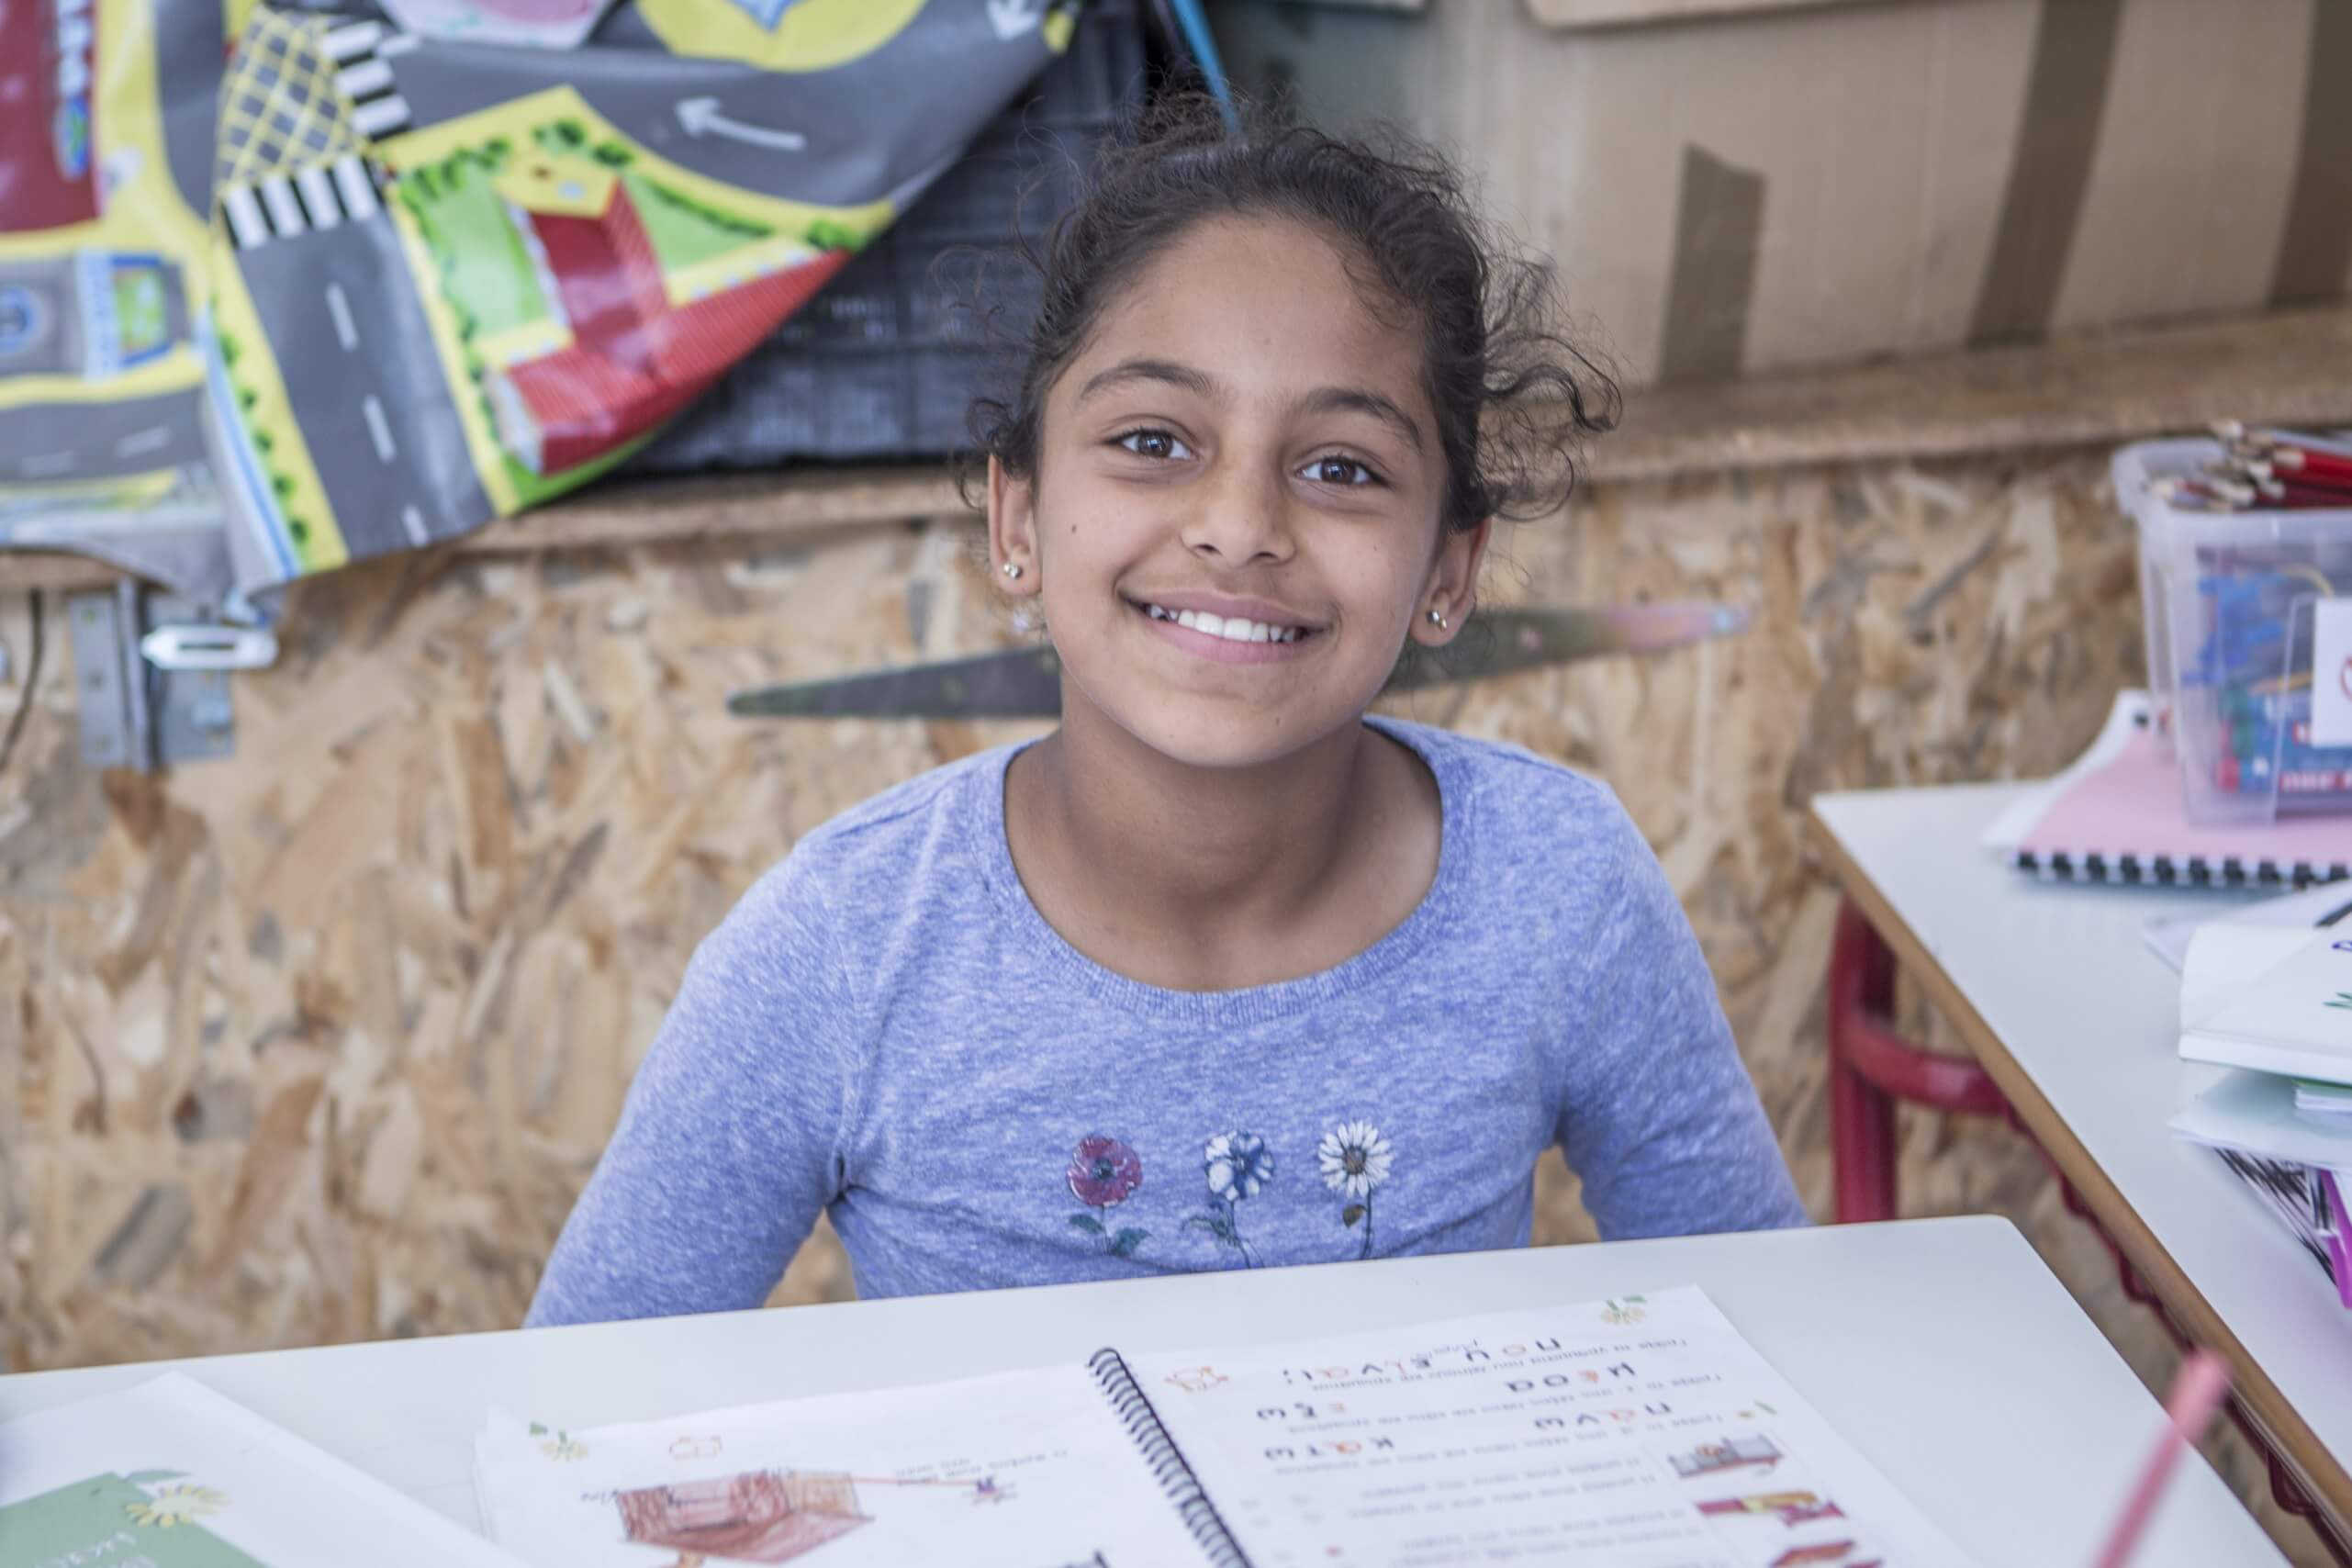 Smiling girl who is a child refugee in Greece